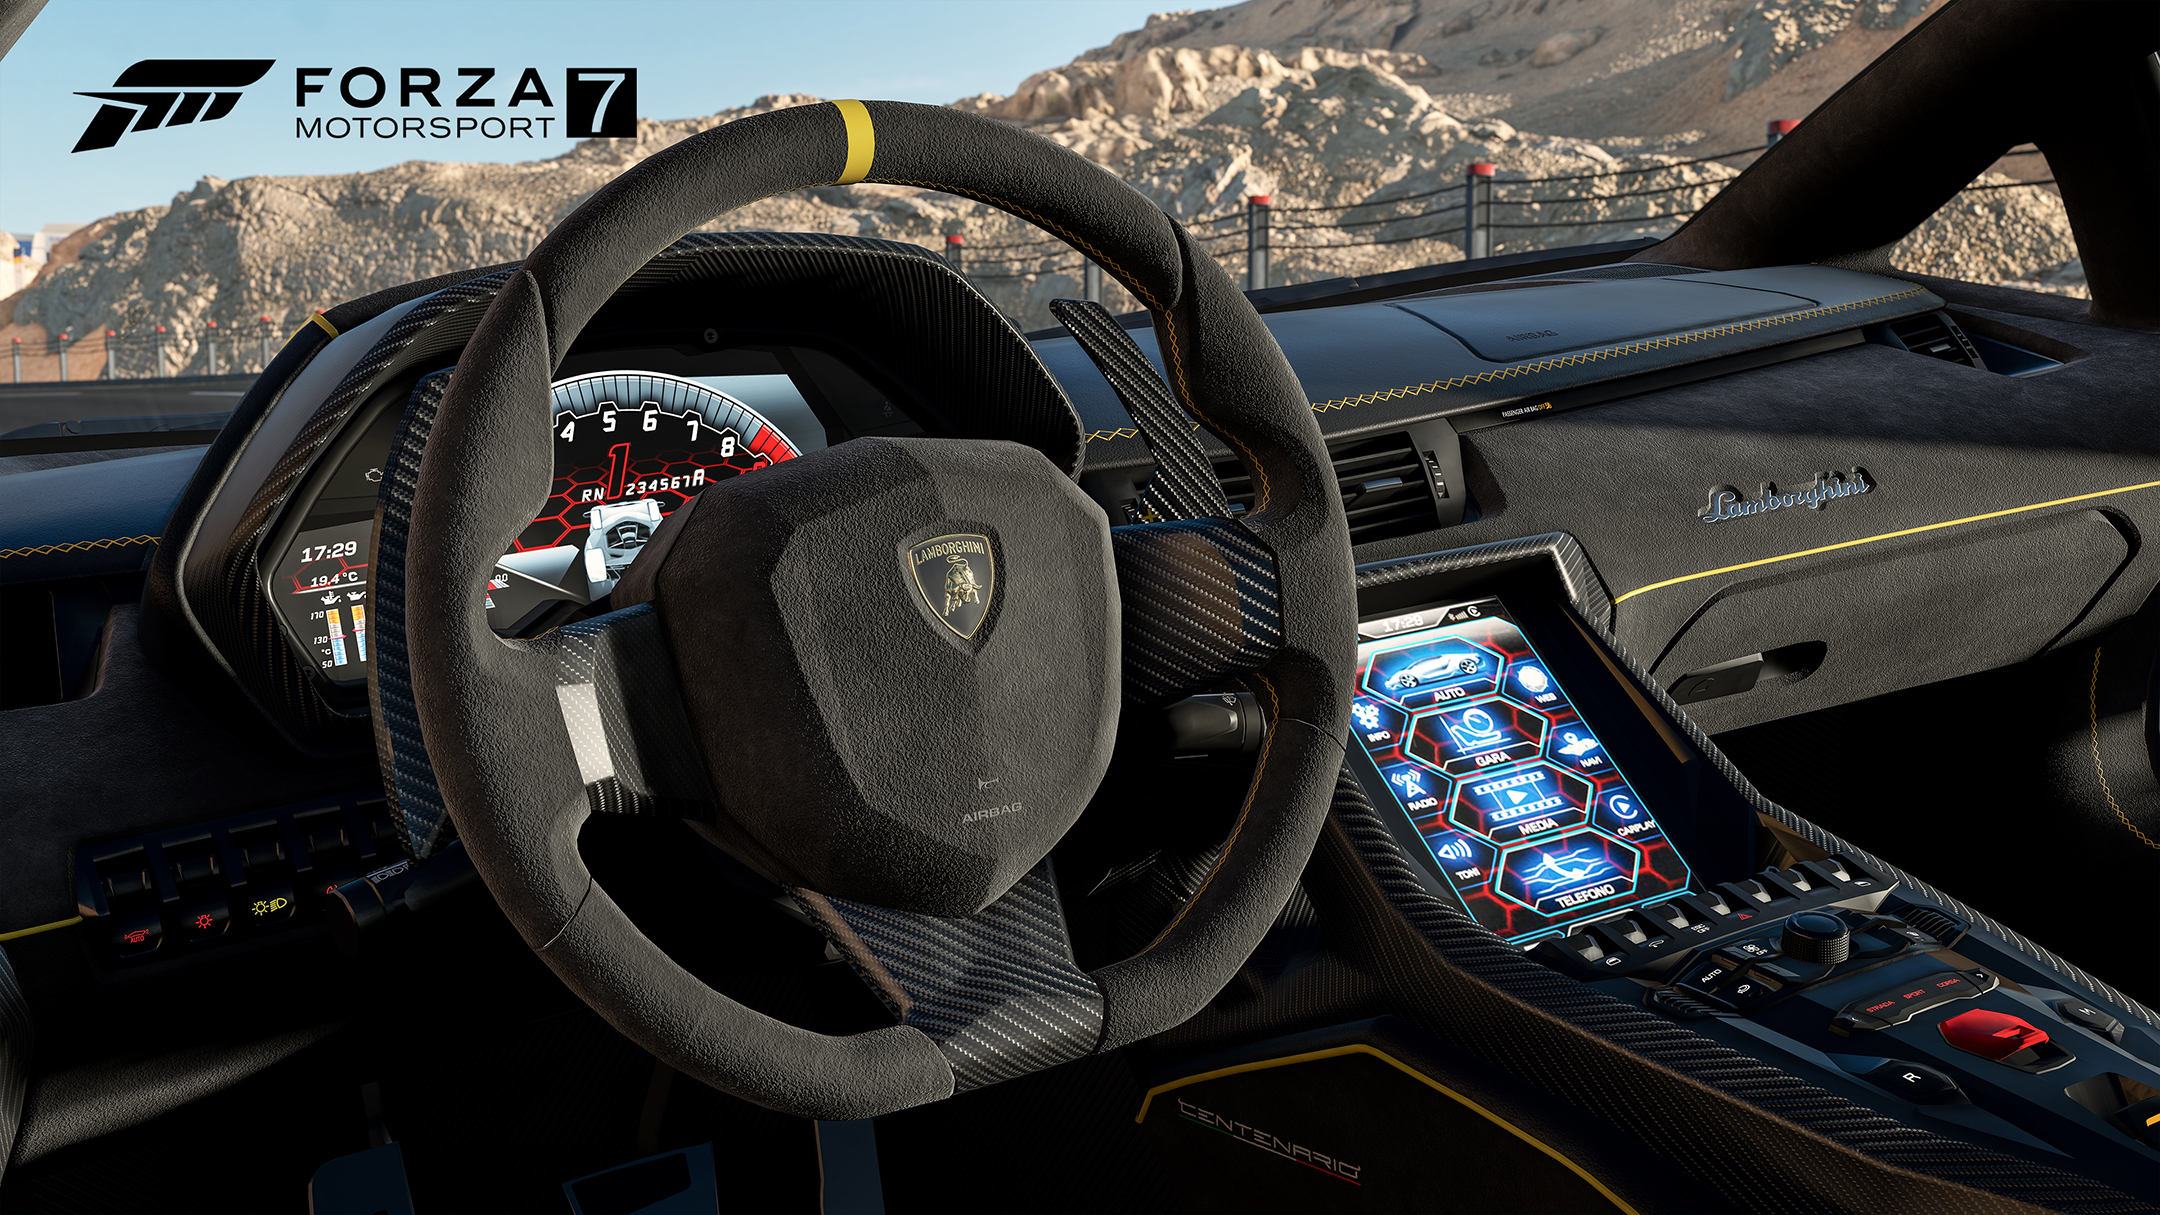 forza motorsport 7 nouveautés gameplay 30 track locations 700 cars